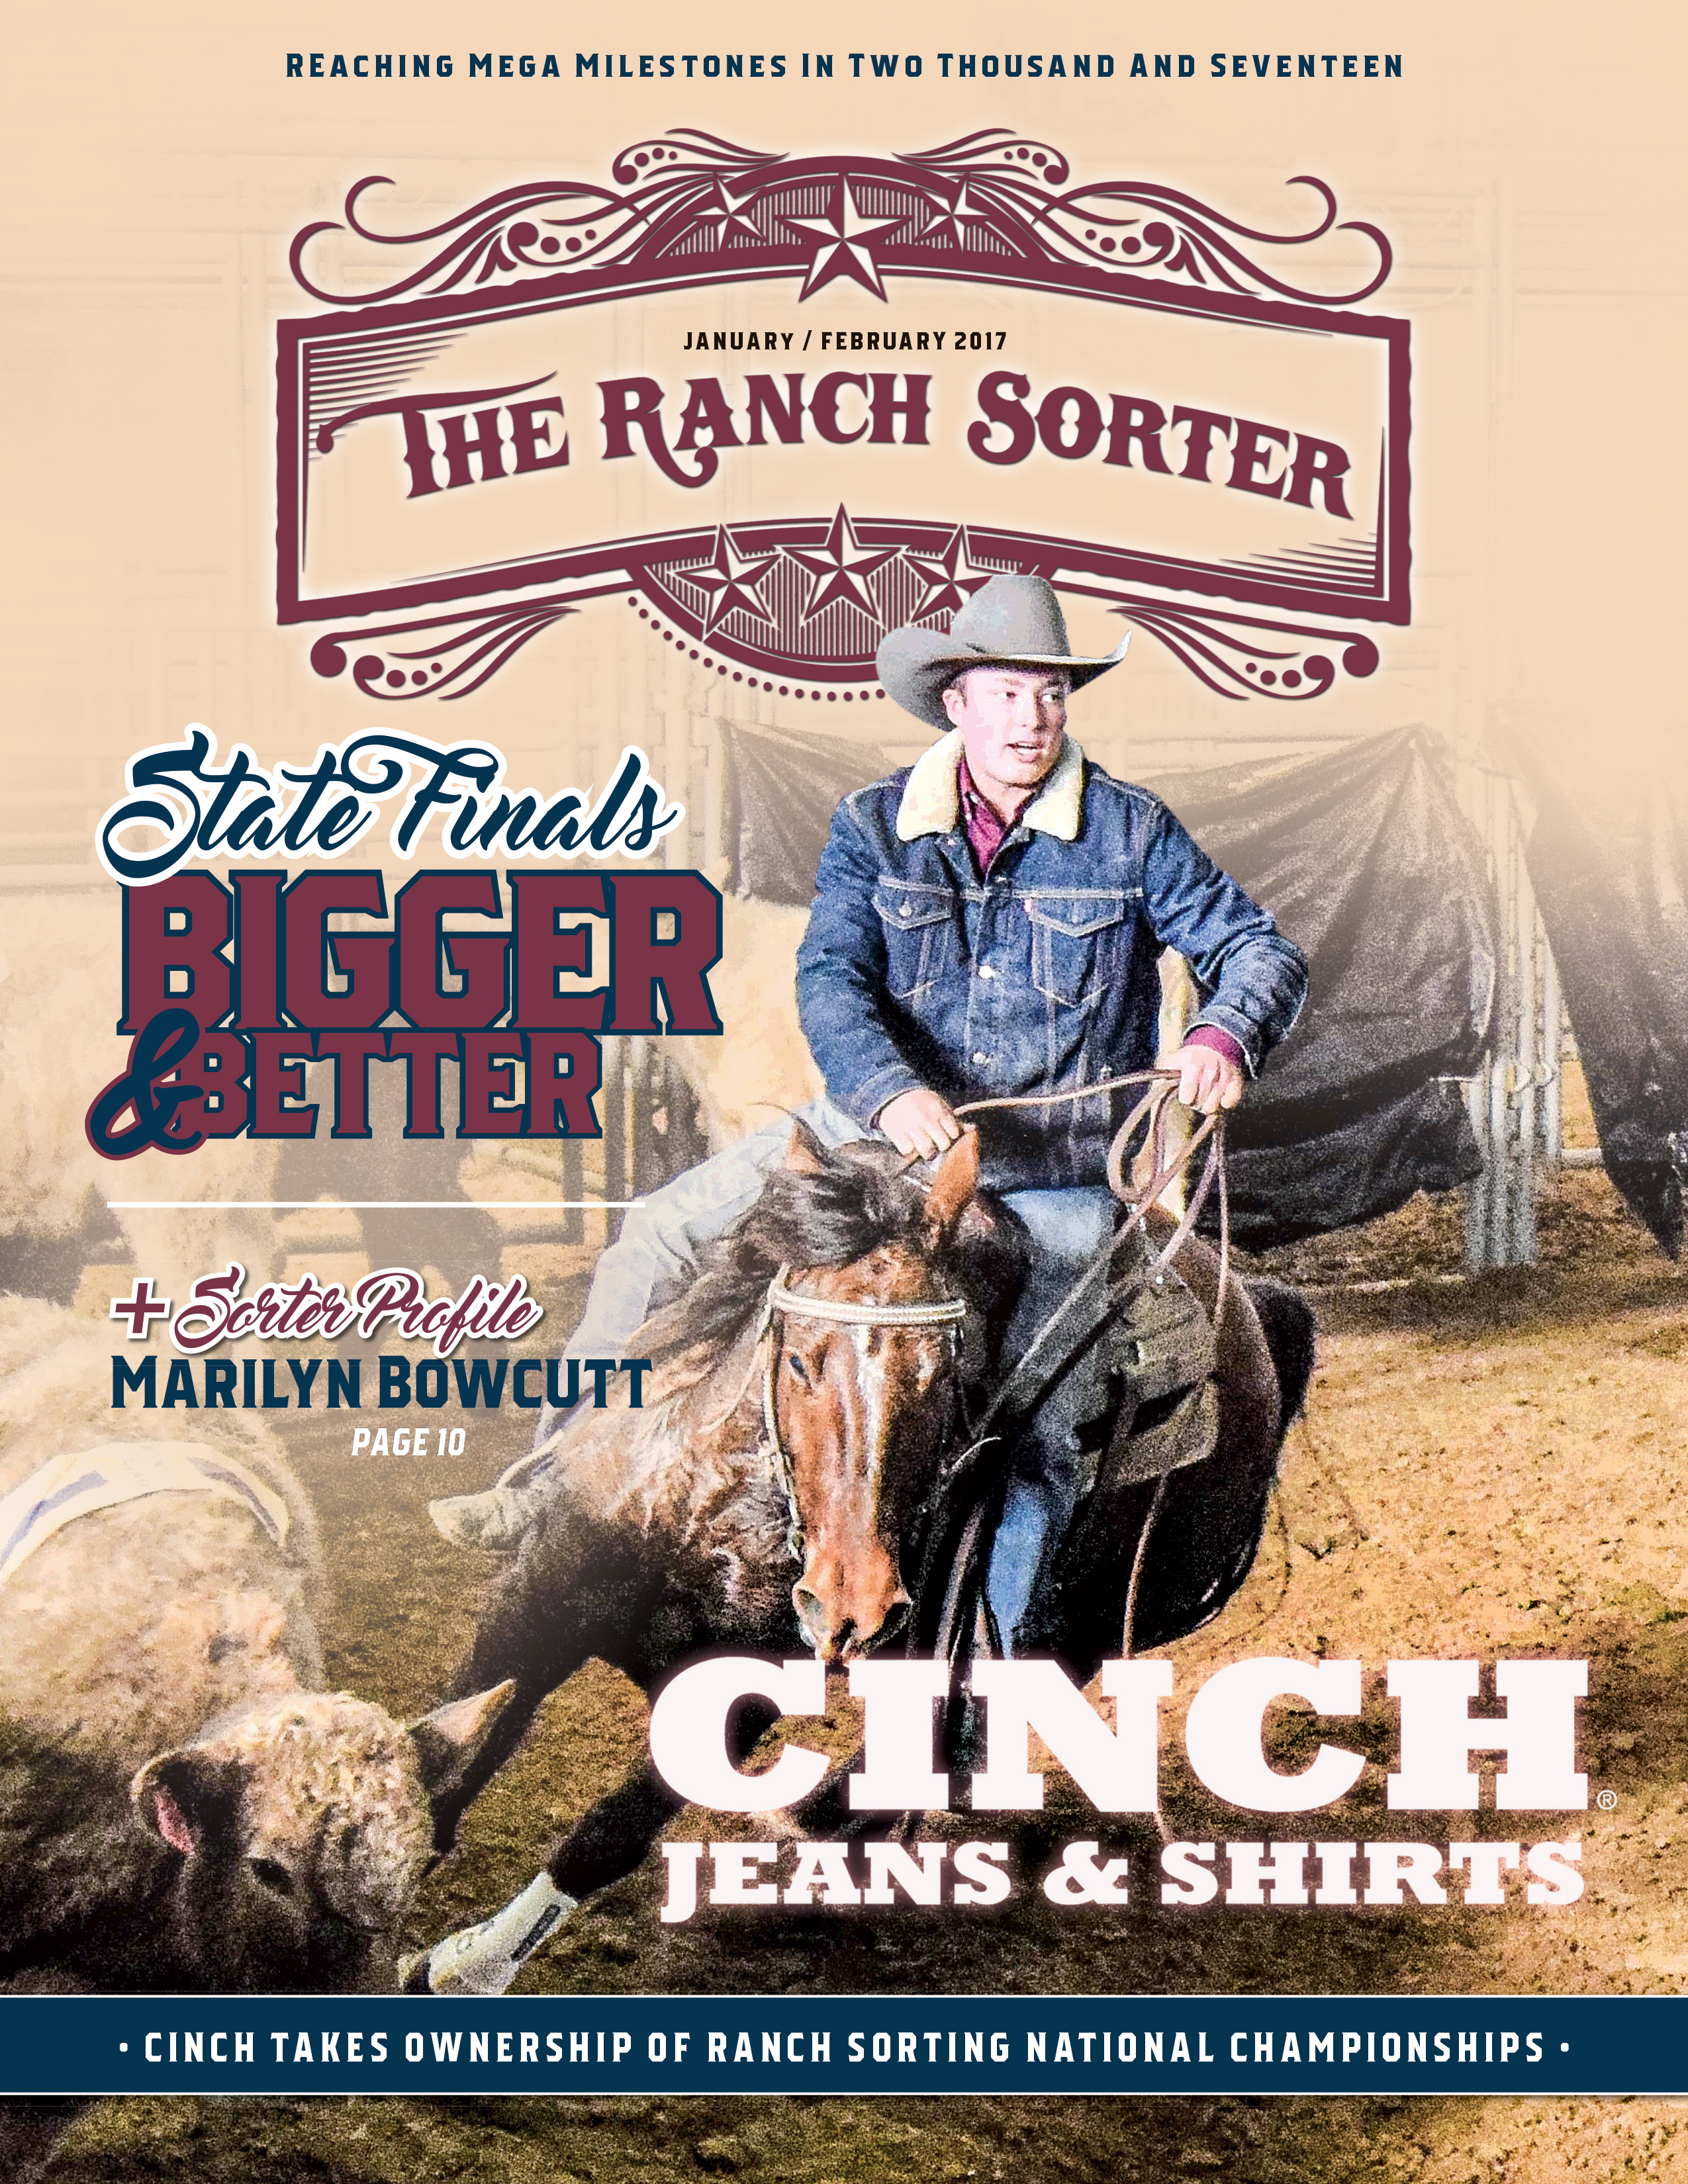 Ranch Sorting Magazine Coming Soon